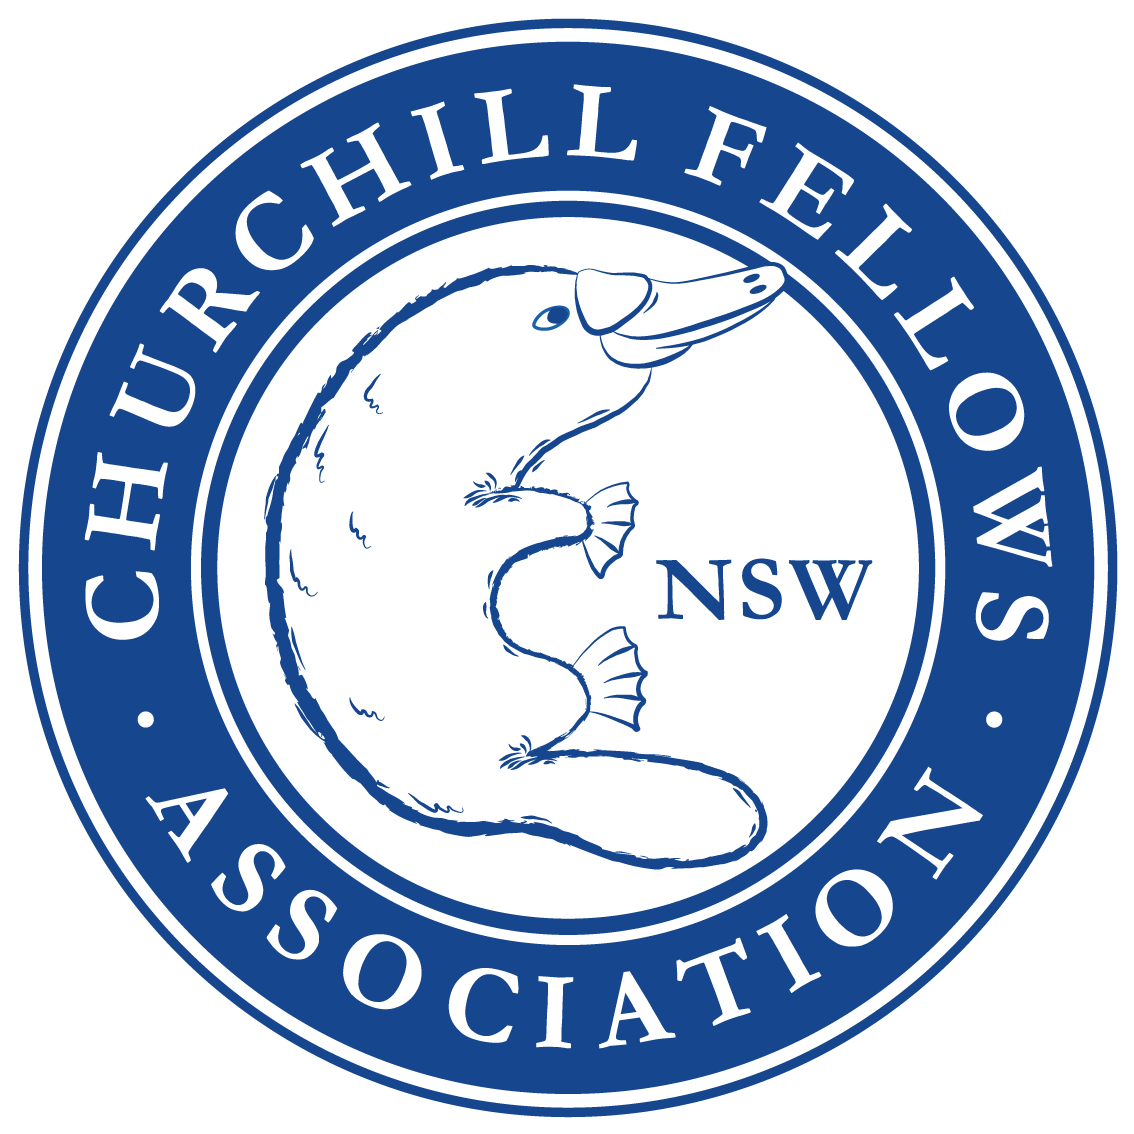 Churchill Fellows Association of NSW